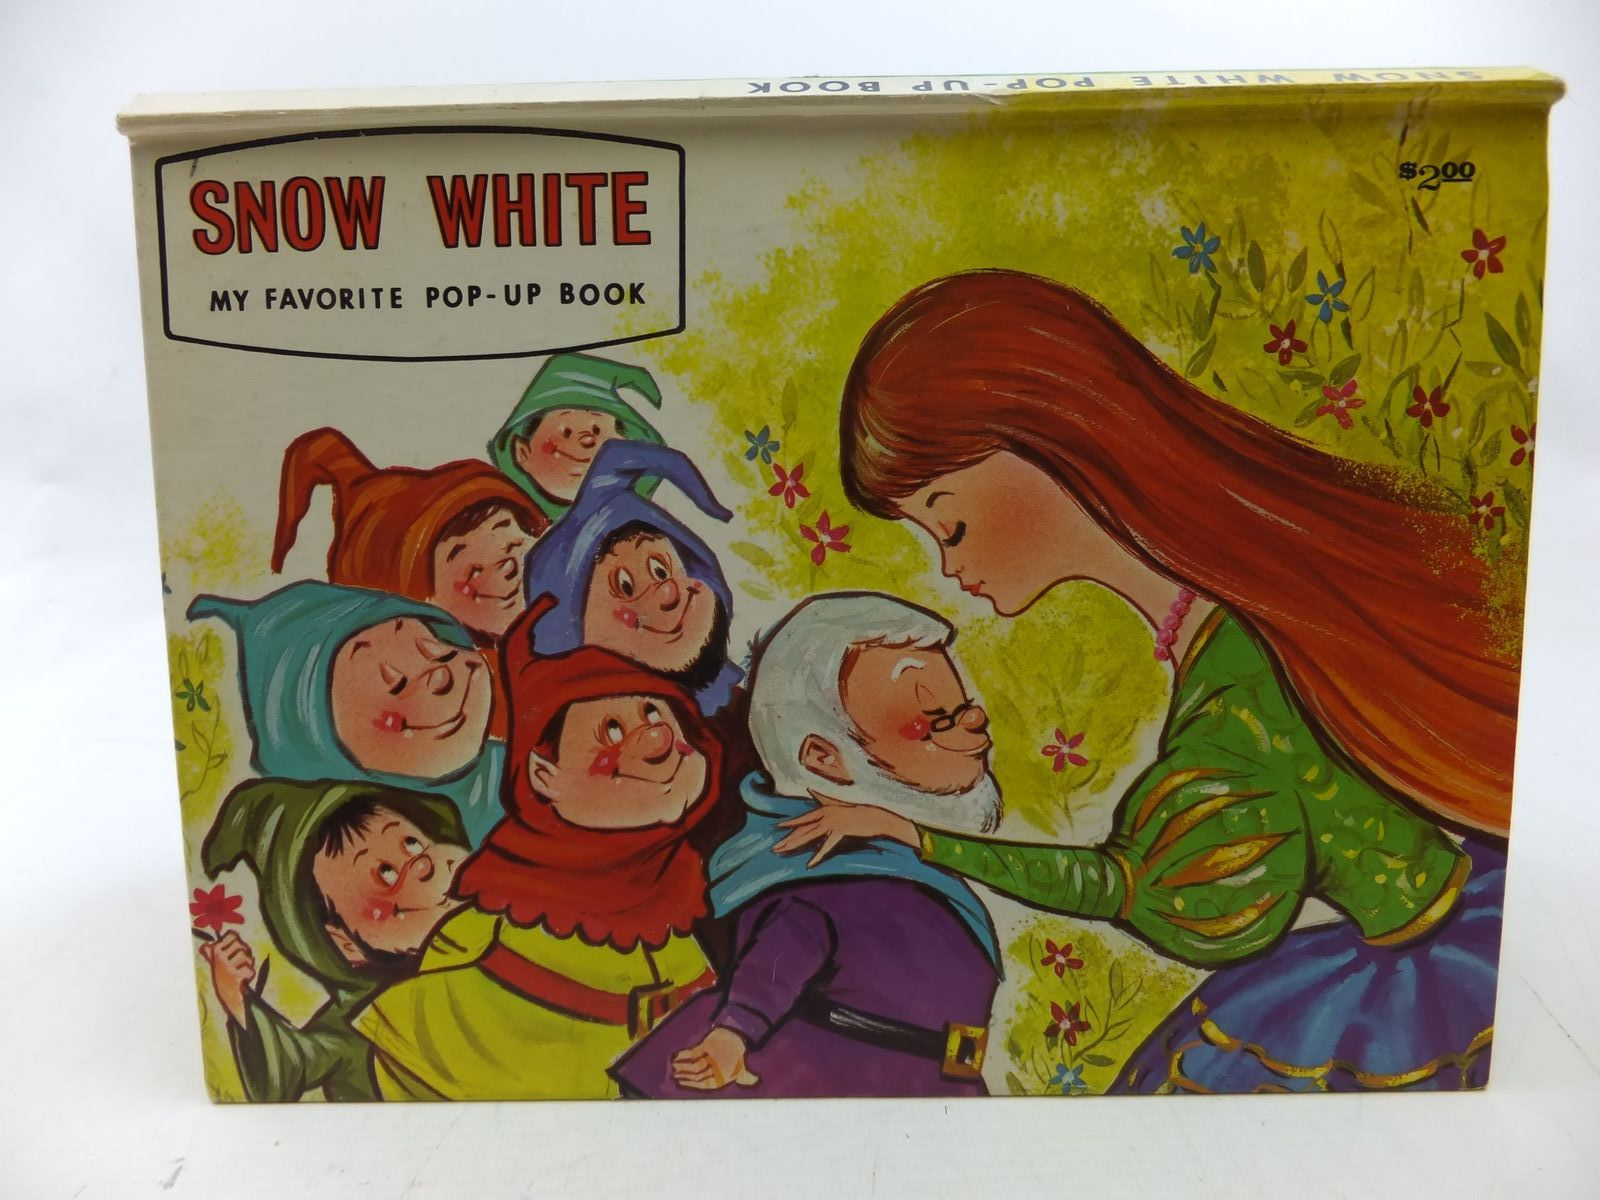 Photo of SNOW WHITE MY FAVOURITE POP-UP BOOK published by Modern Promotions (STOCK CODE: 2112947)  for sale by Stella & Rose's Books